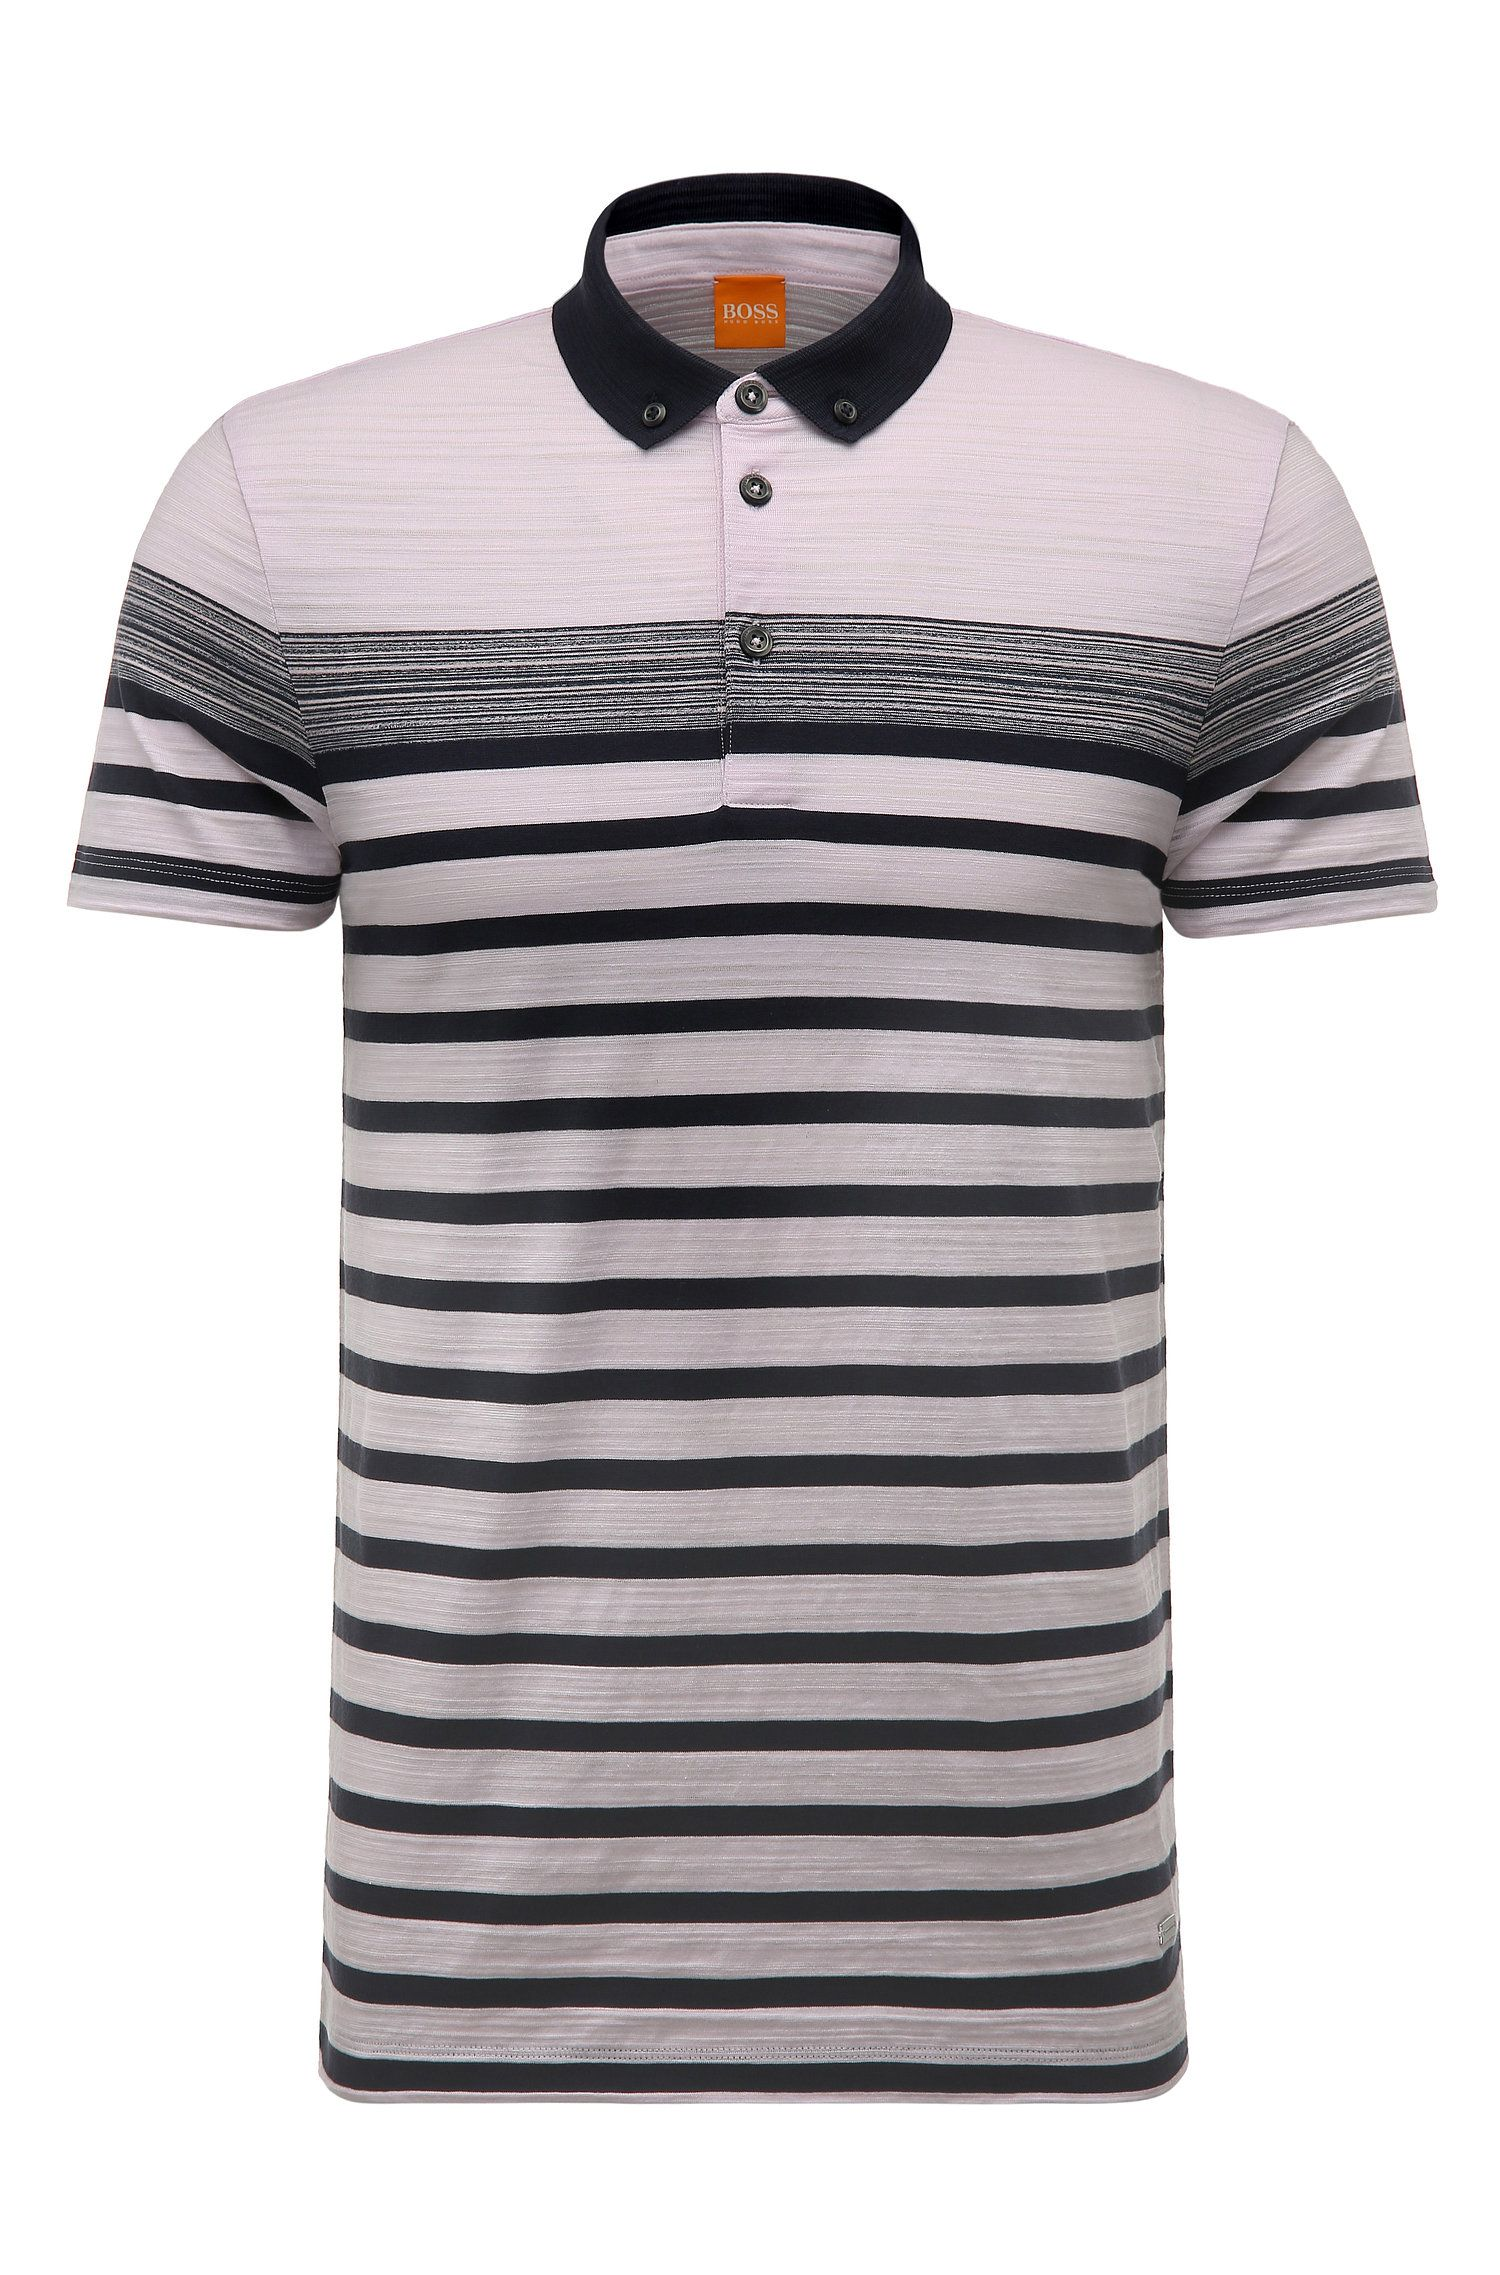 Striped Cotton Polo Shirt, Regular Fit | Promo